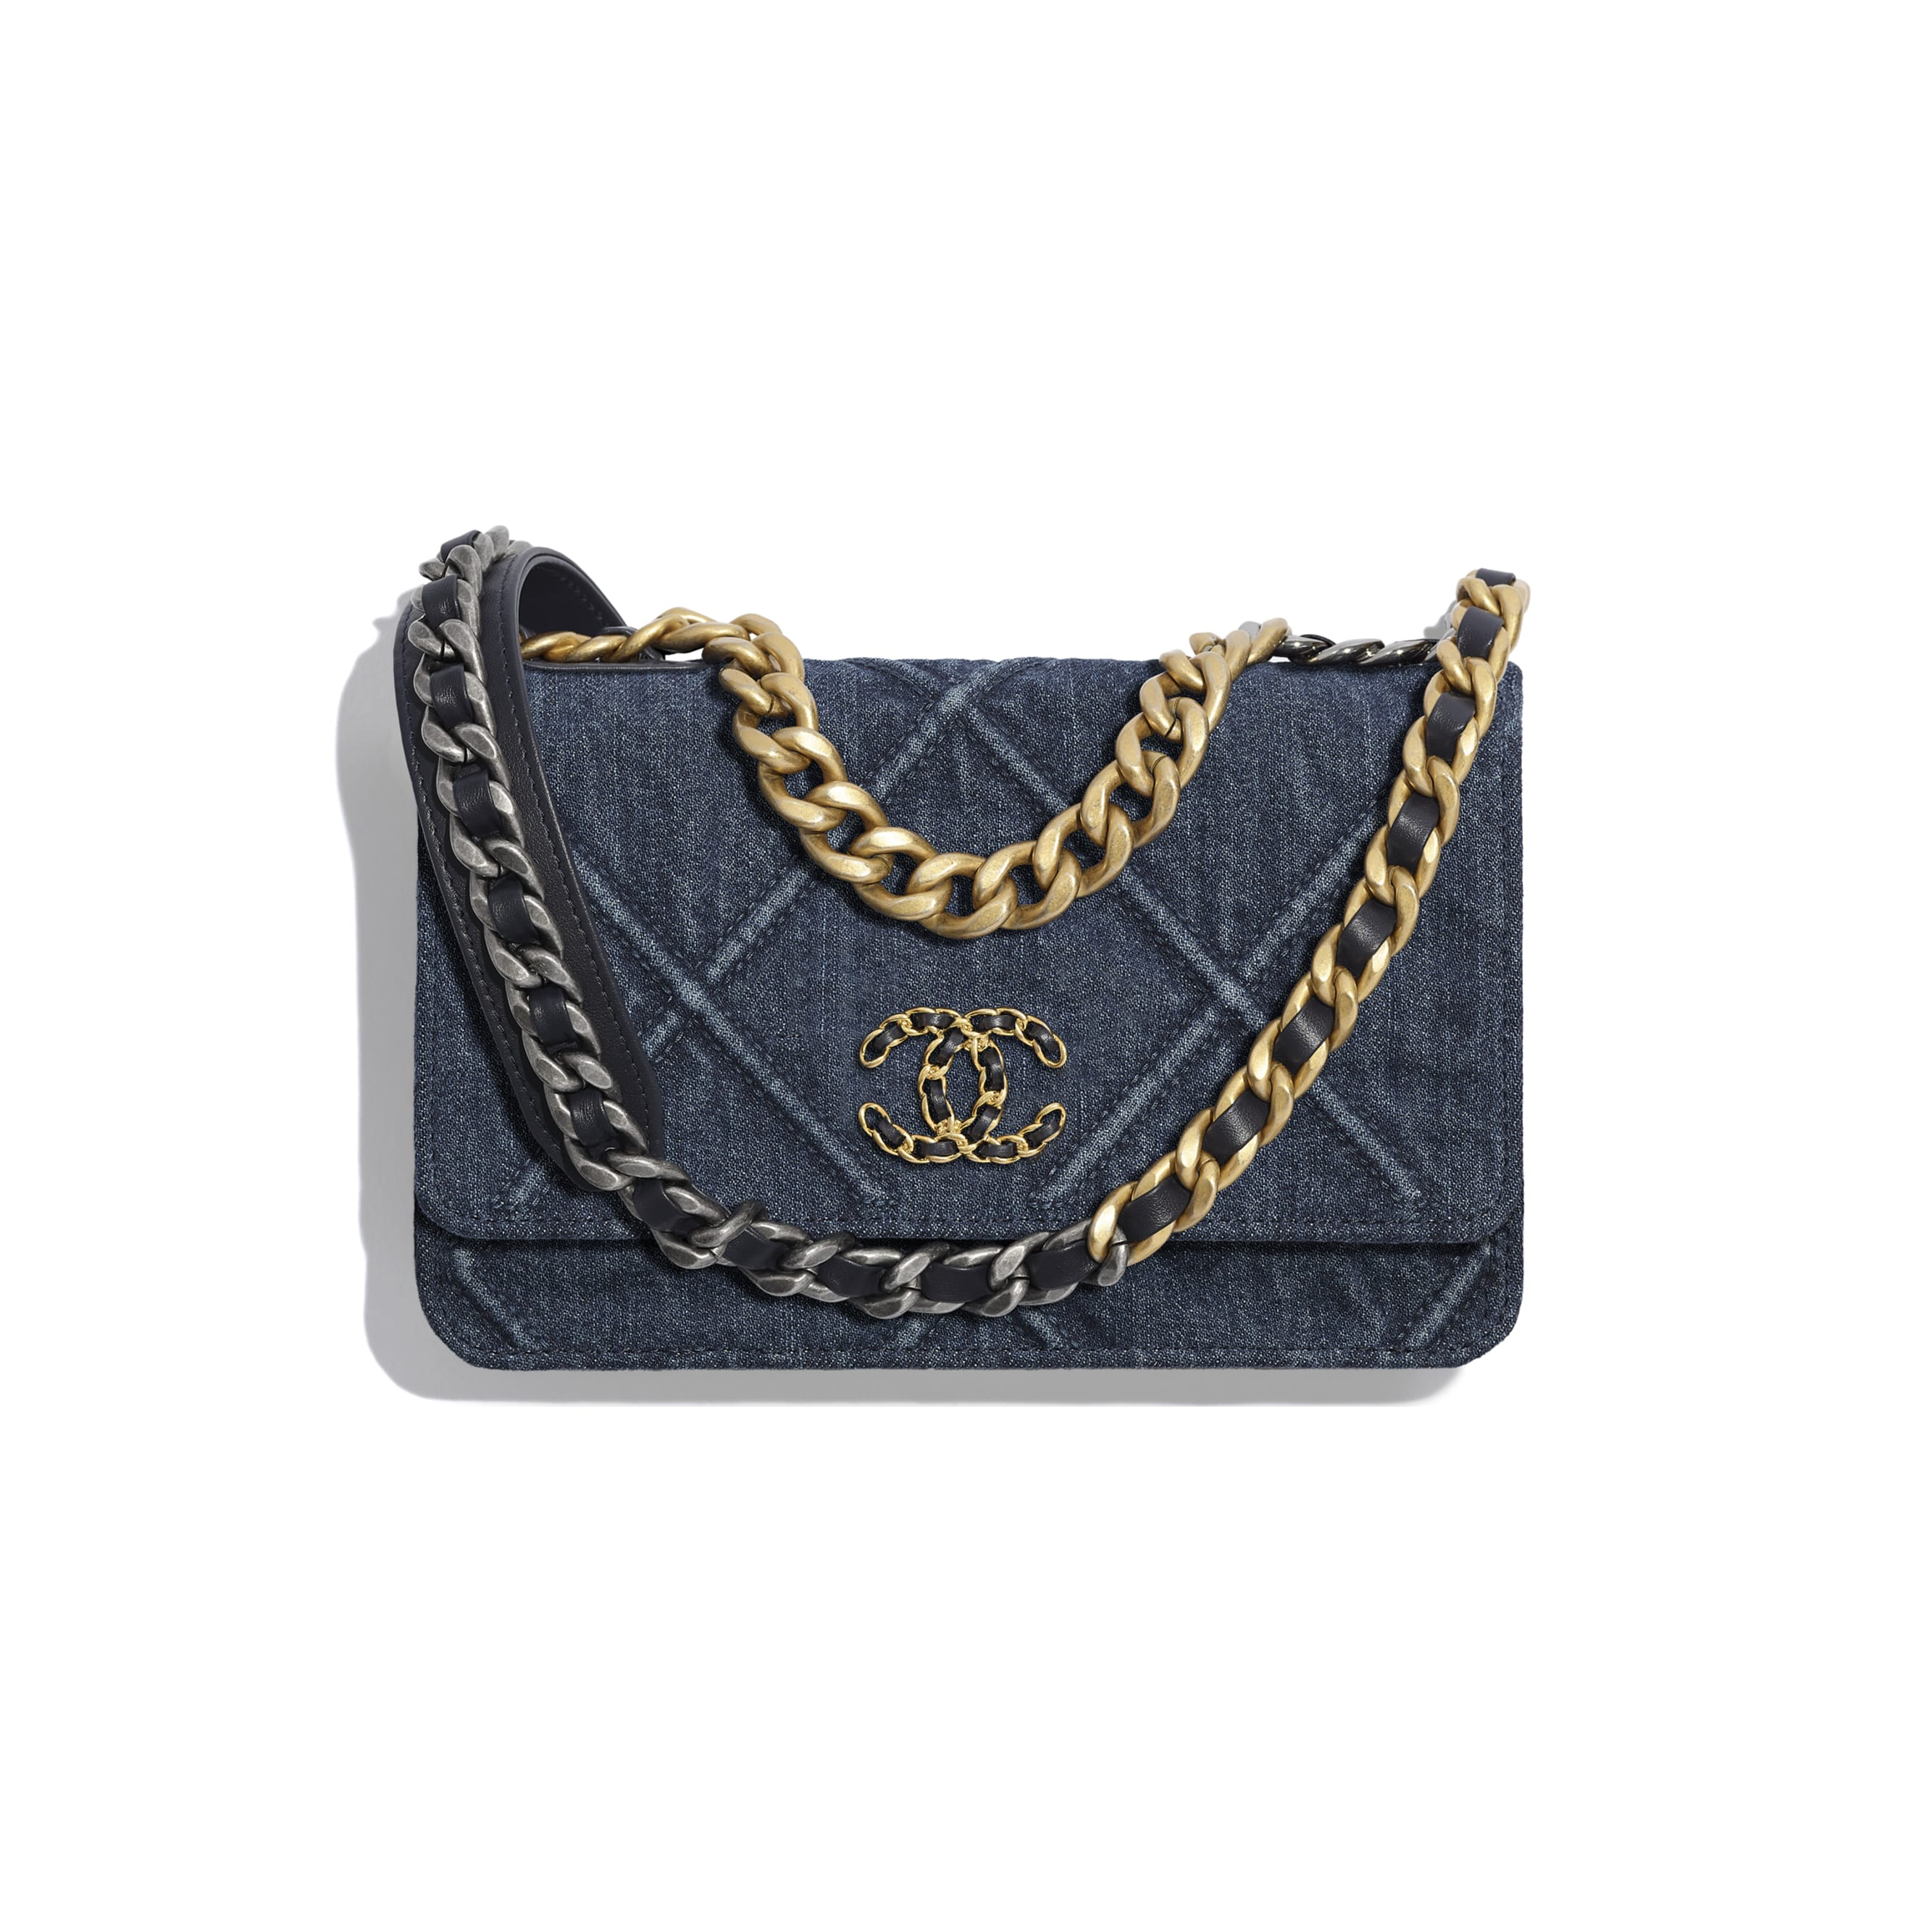 CHANEL 19 Wallet on Chain - Blue - Denim, Gold-Tone, Silver-Tone & Ruthenium-Finish Metal - CHANEL - Default view - see standard sized version